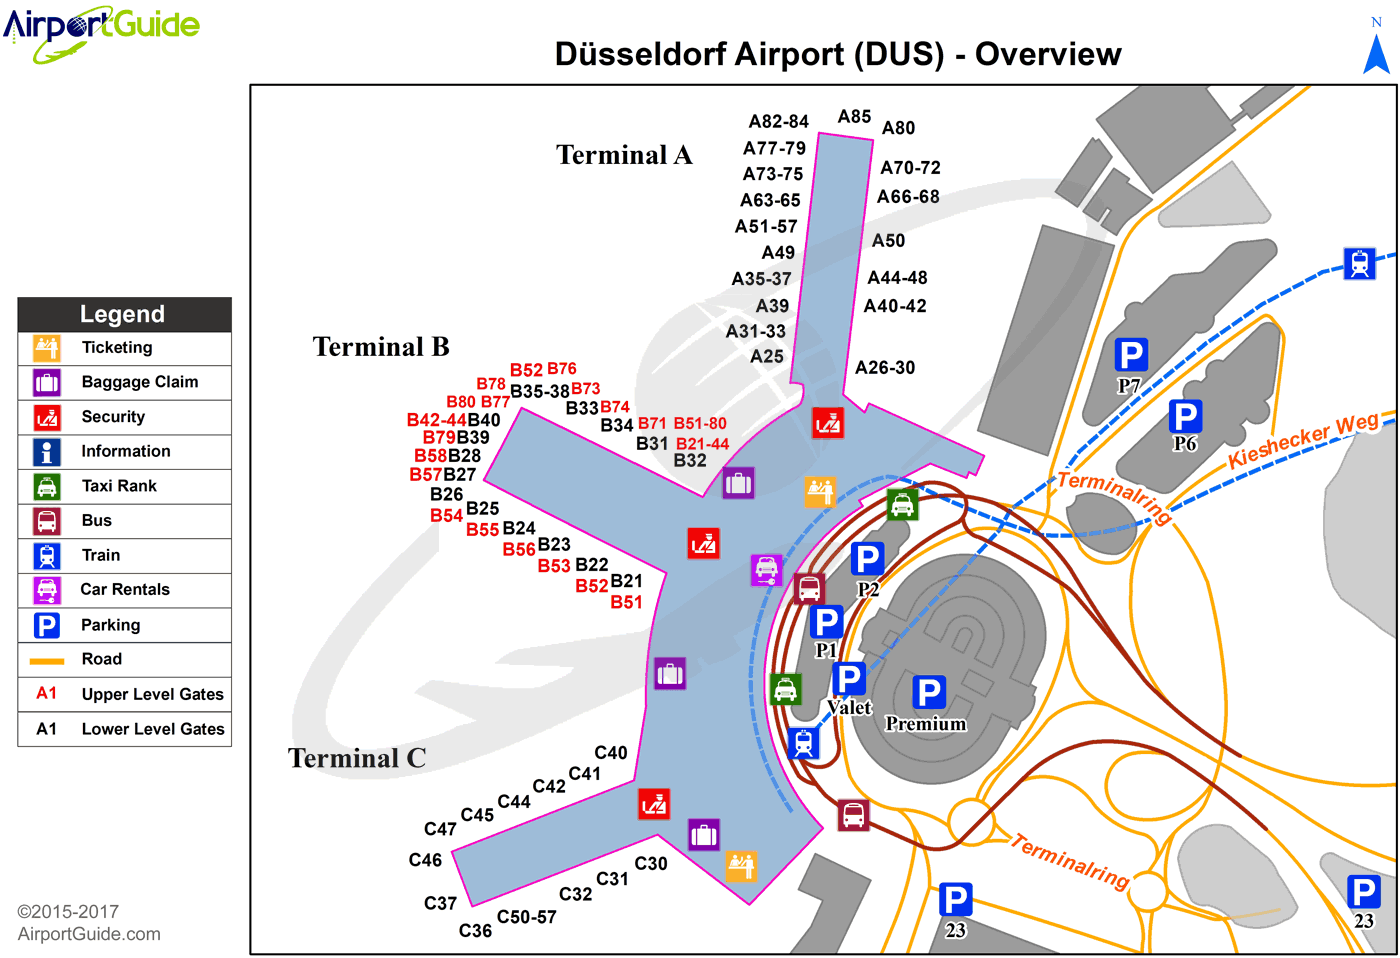 Dusseldorf Dusseldorf International Dus Airport Terminal Map Overview Airport Map Airport Guide Airport